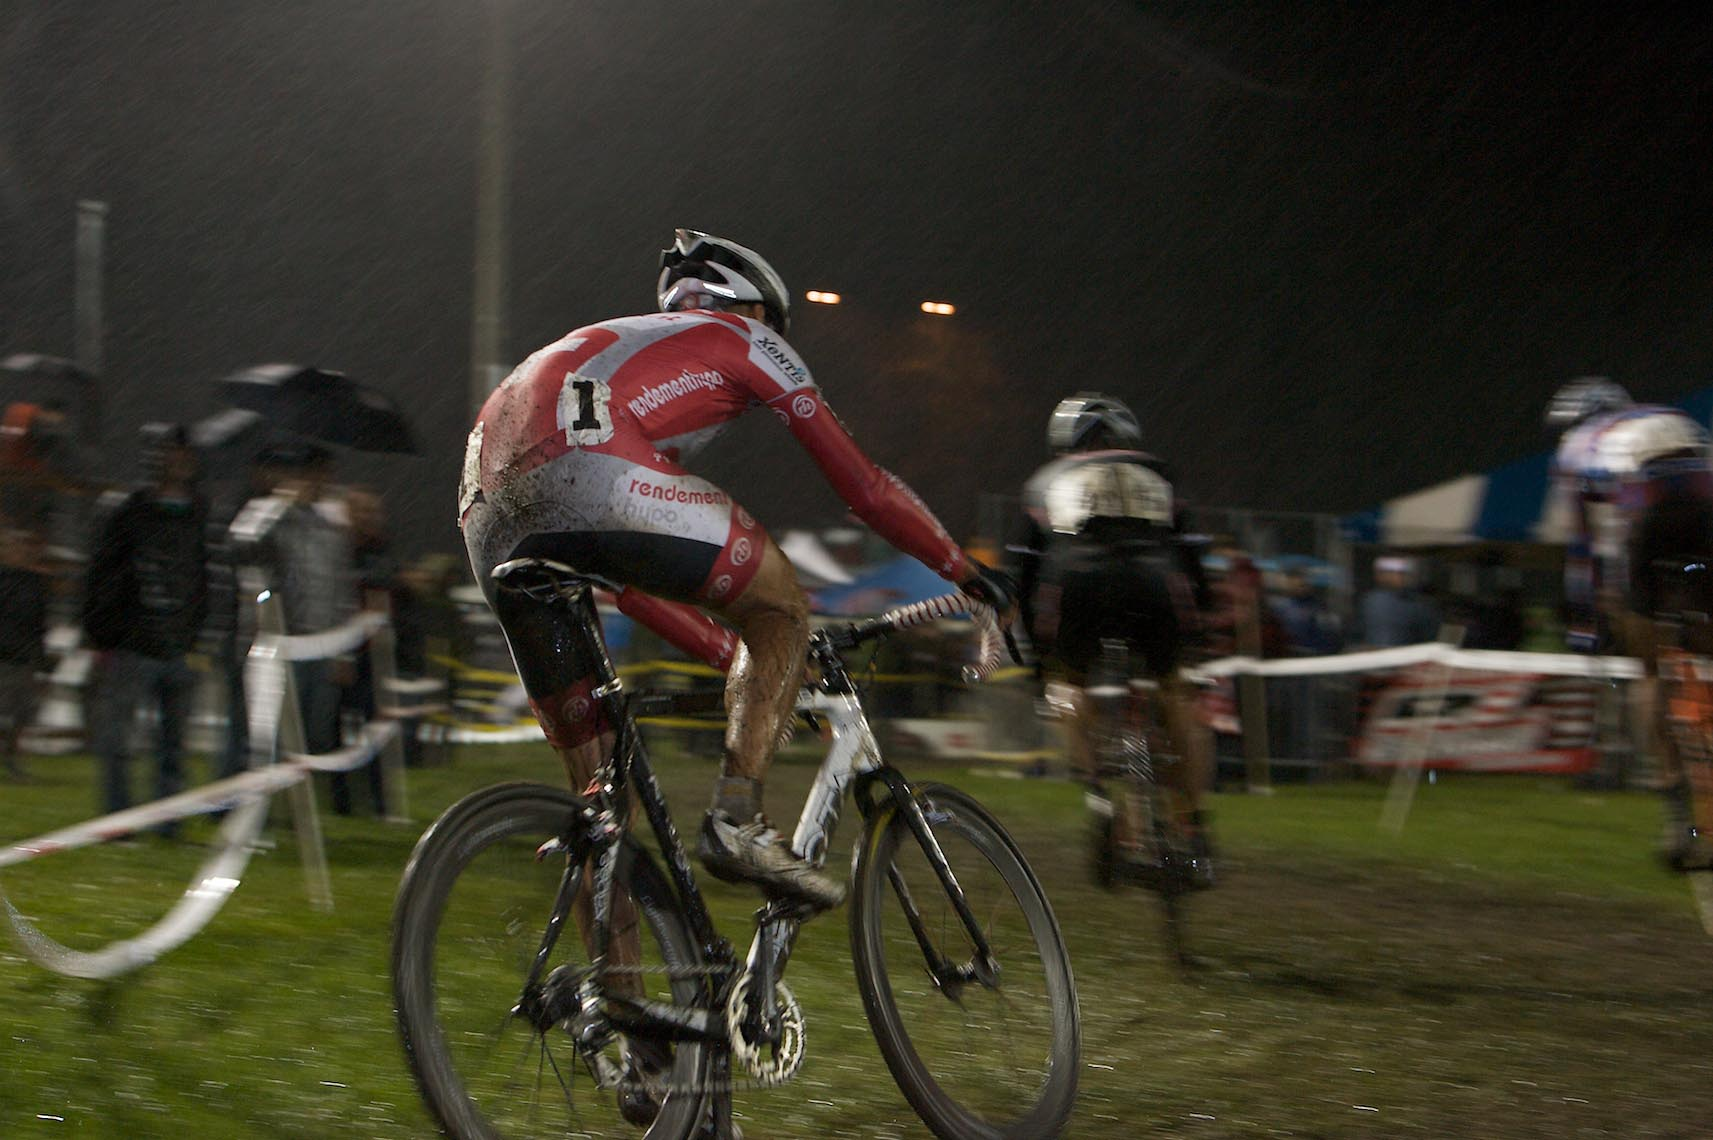 Christian Heule waited until the final lap to make his winning move. by Joe Sales